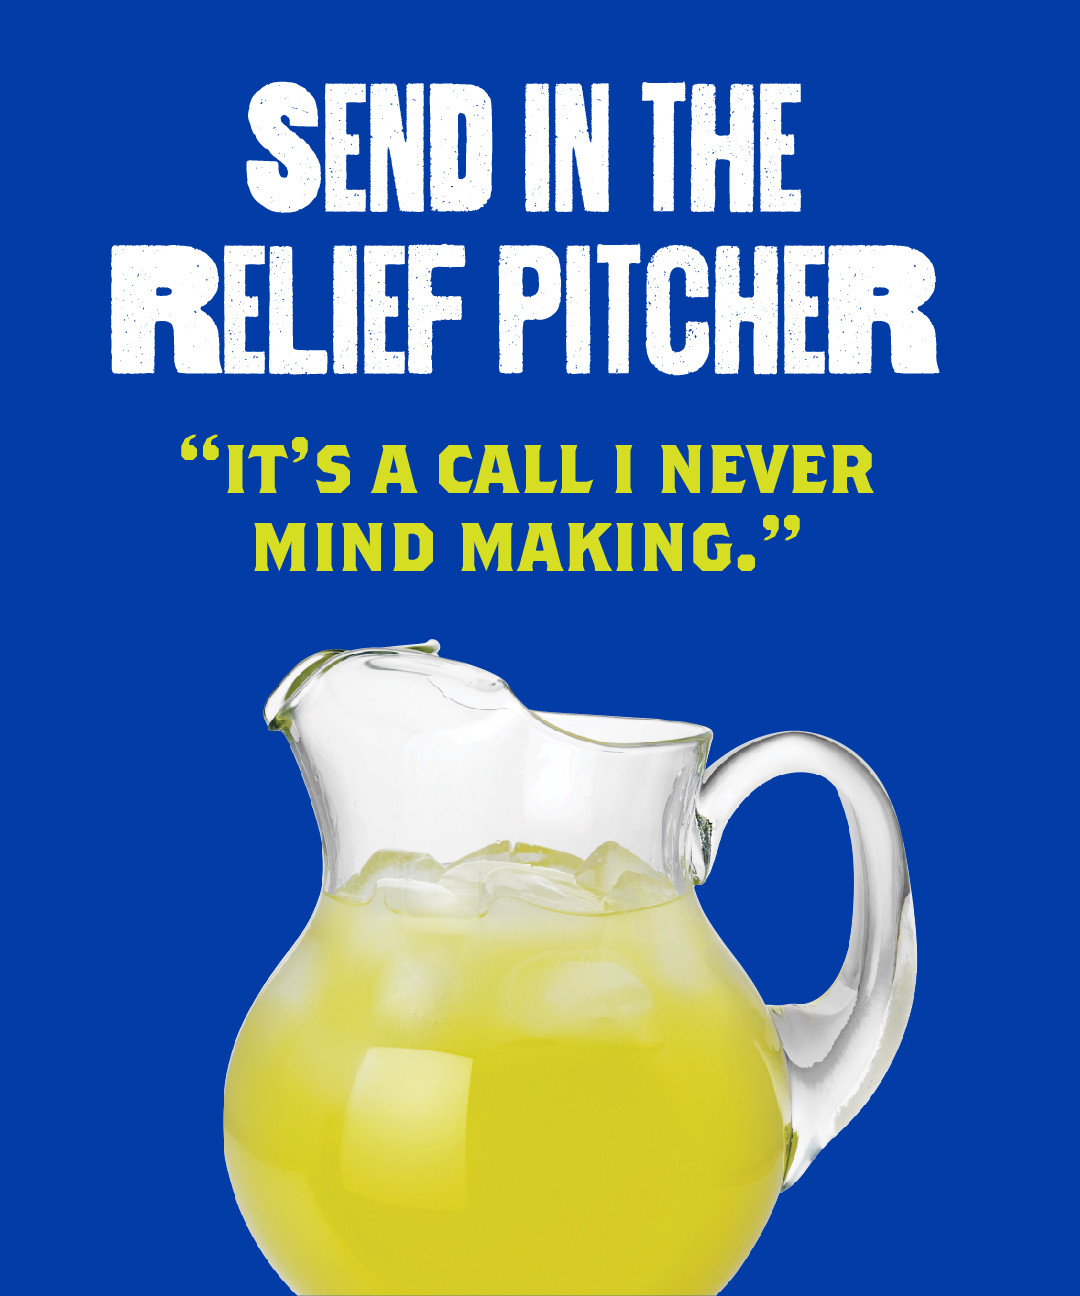 Need a relief pitcher?